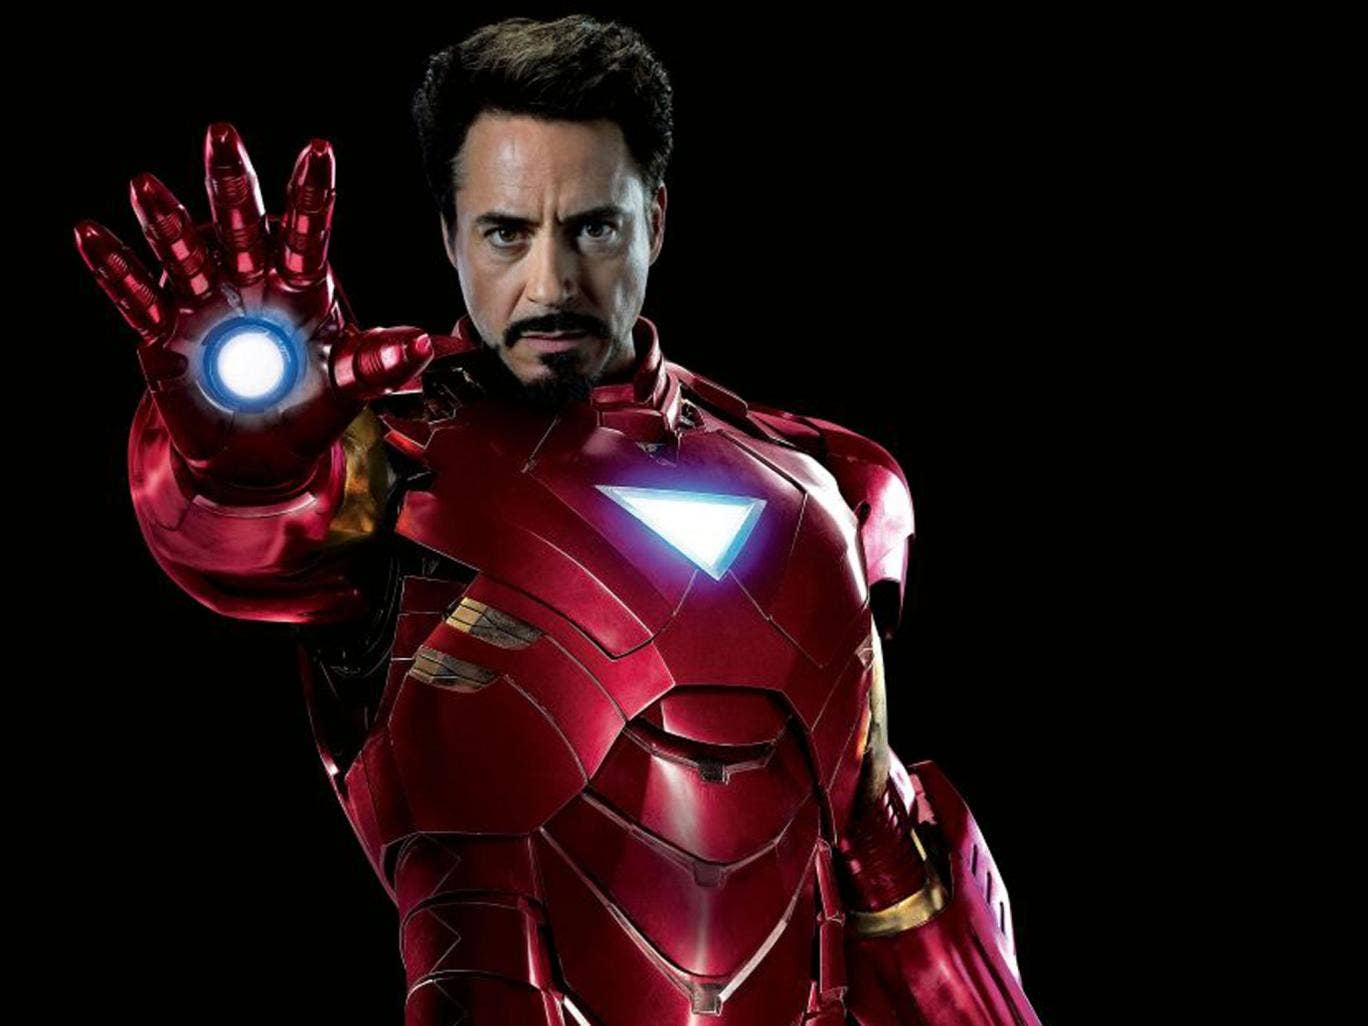 Robert Downey Jr as Marvel Comics' superhero Iron Man